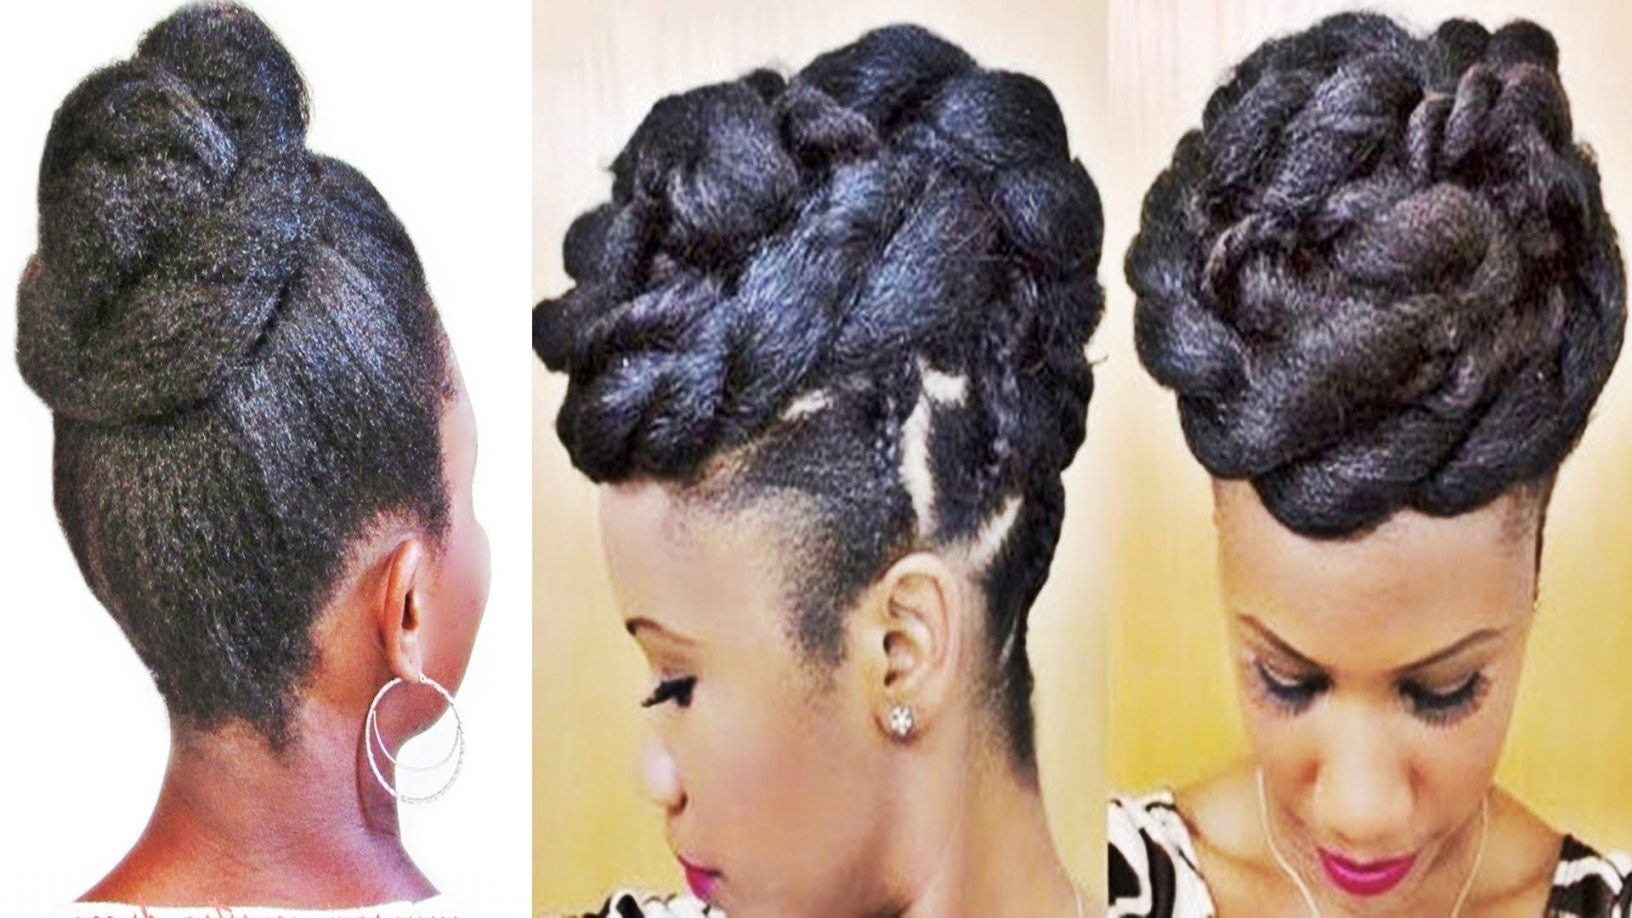 Braids And Twists Updo Hairstyle For Black Women – Youtube Pertaining To Goddess Updo Hairstyles (View 4 of 15)